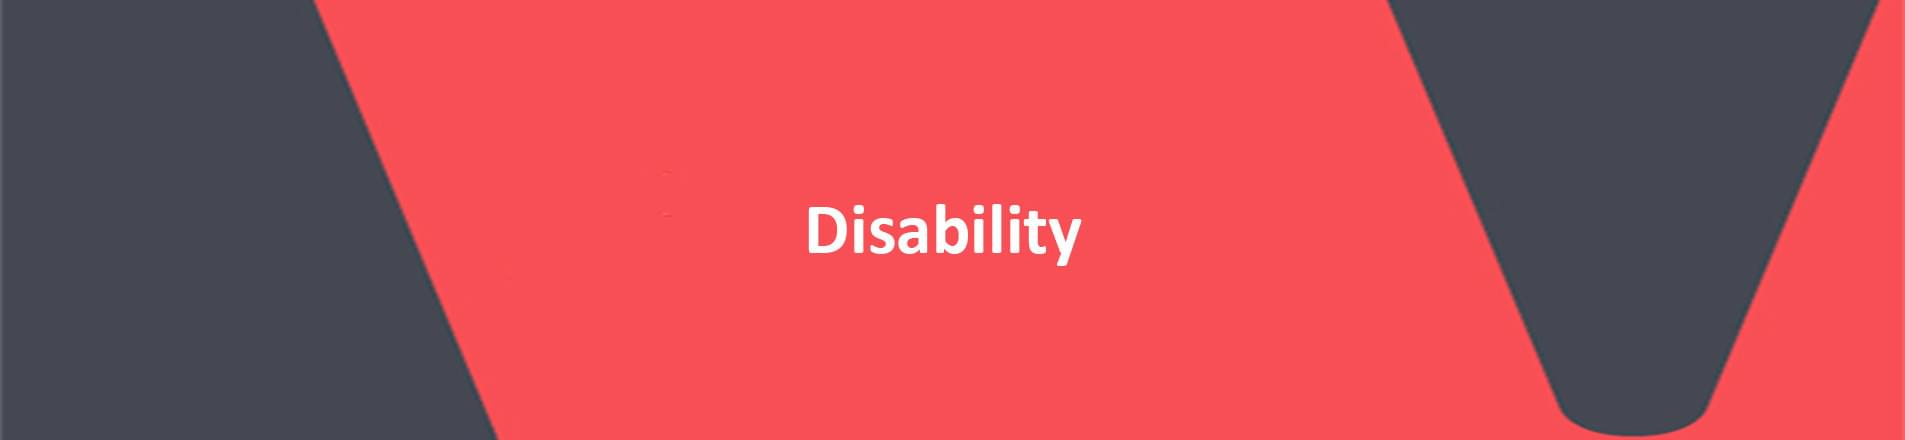 The word Disability in white on a red VERCIDA branded background